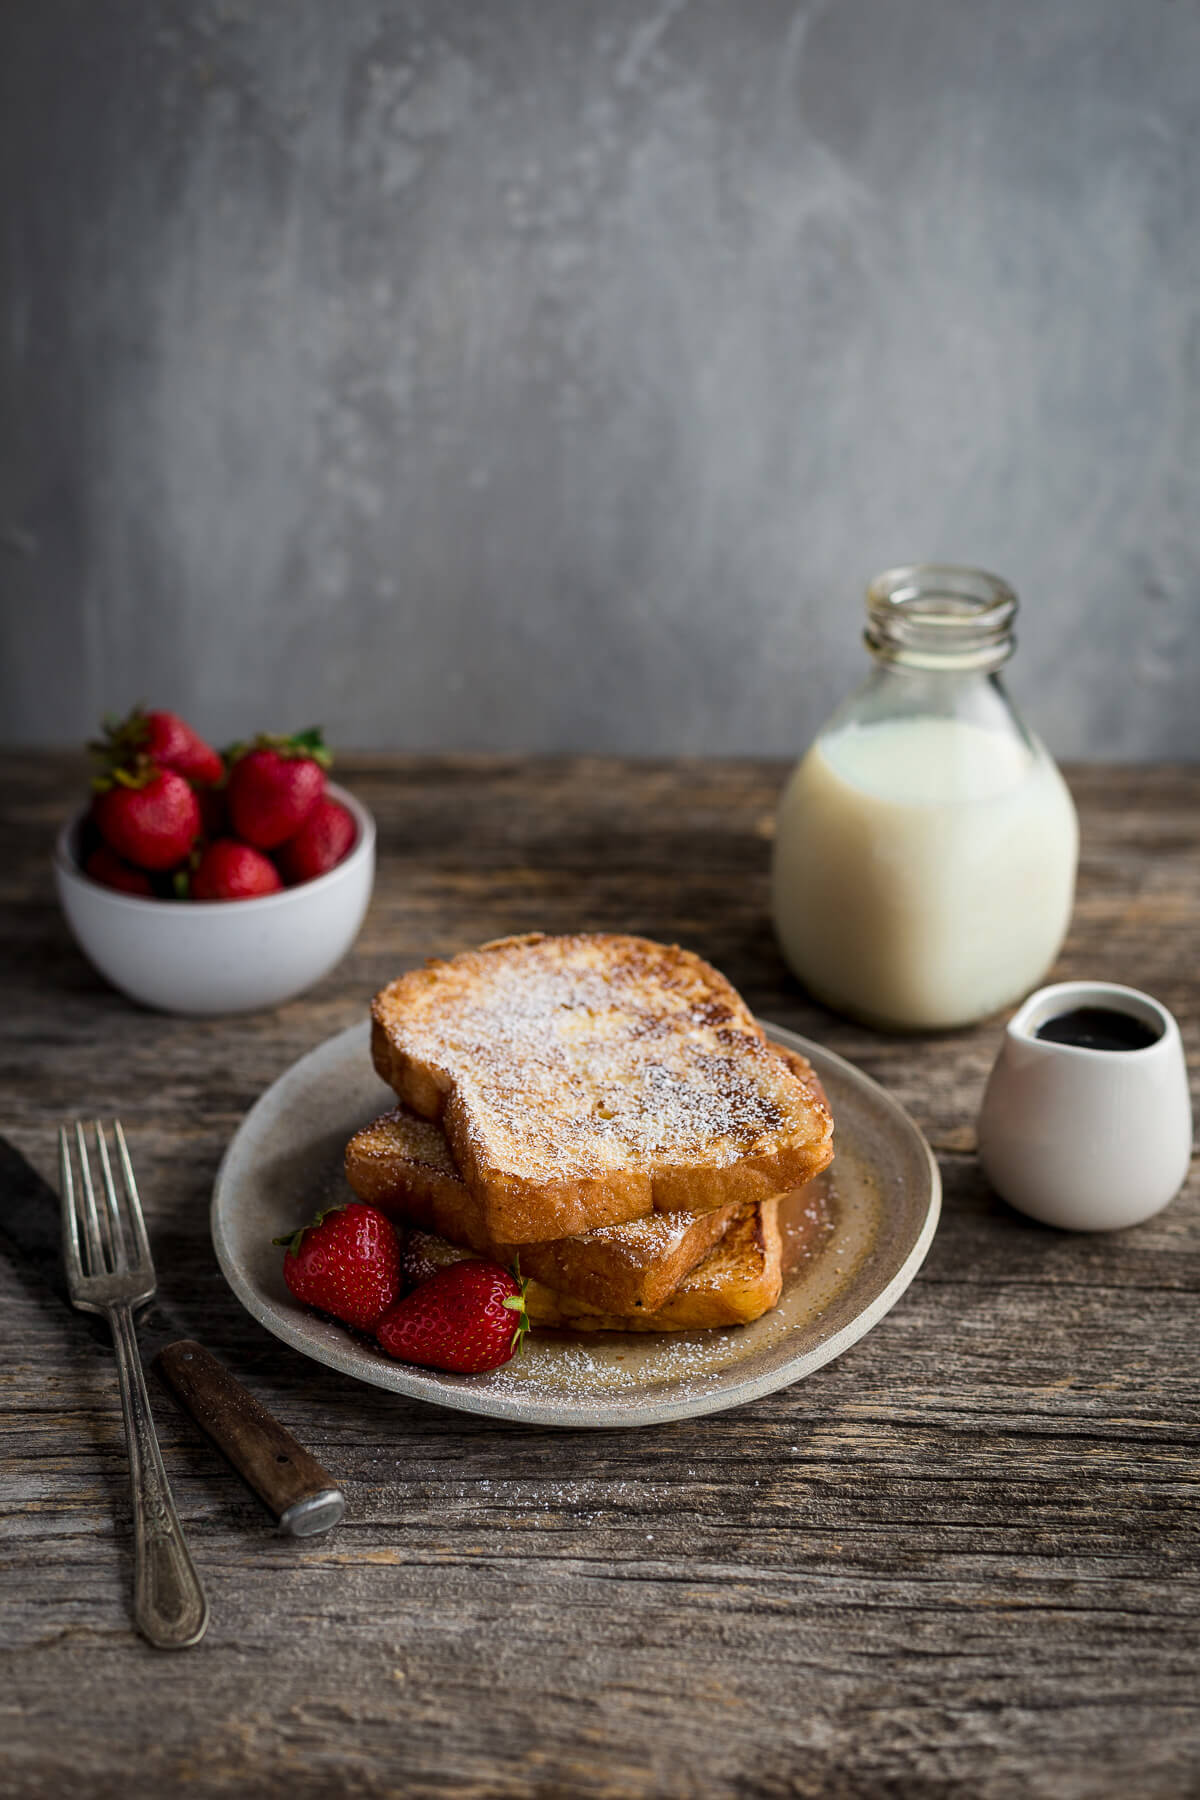 Slices of french toast dusted with powdered sugar served with strawberries.